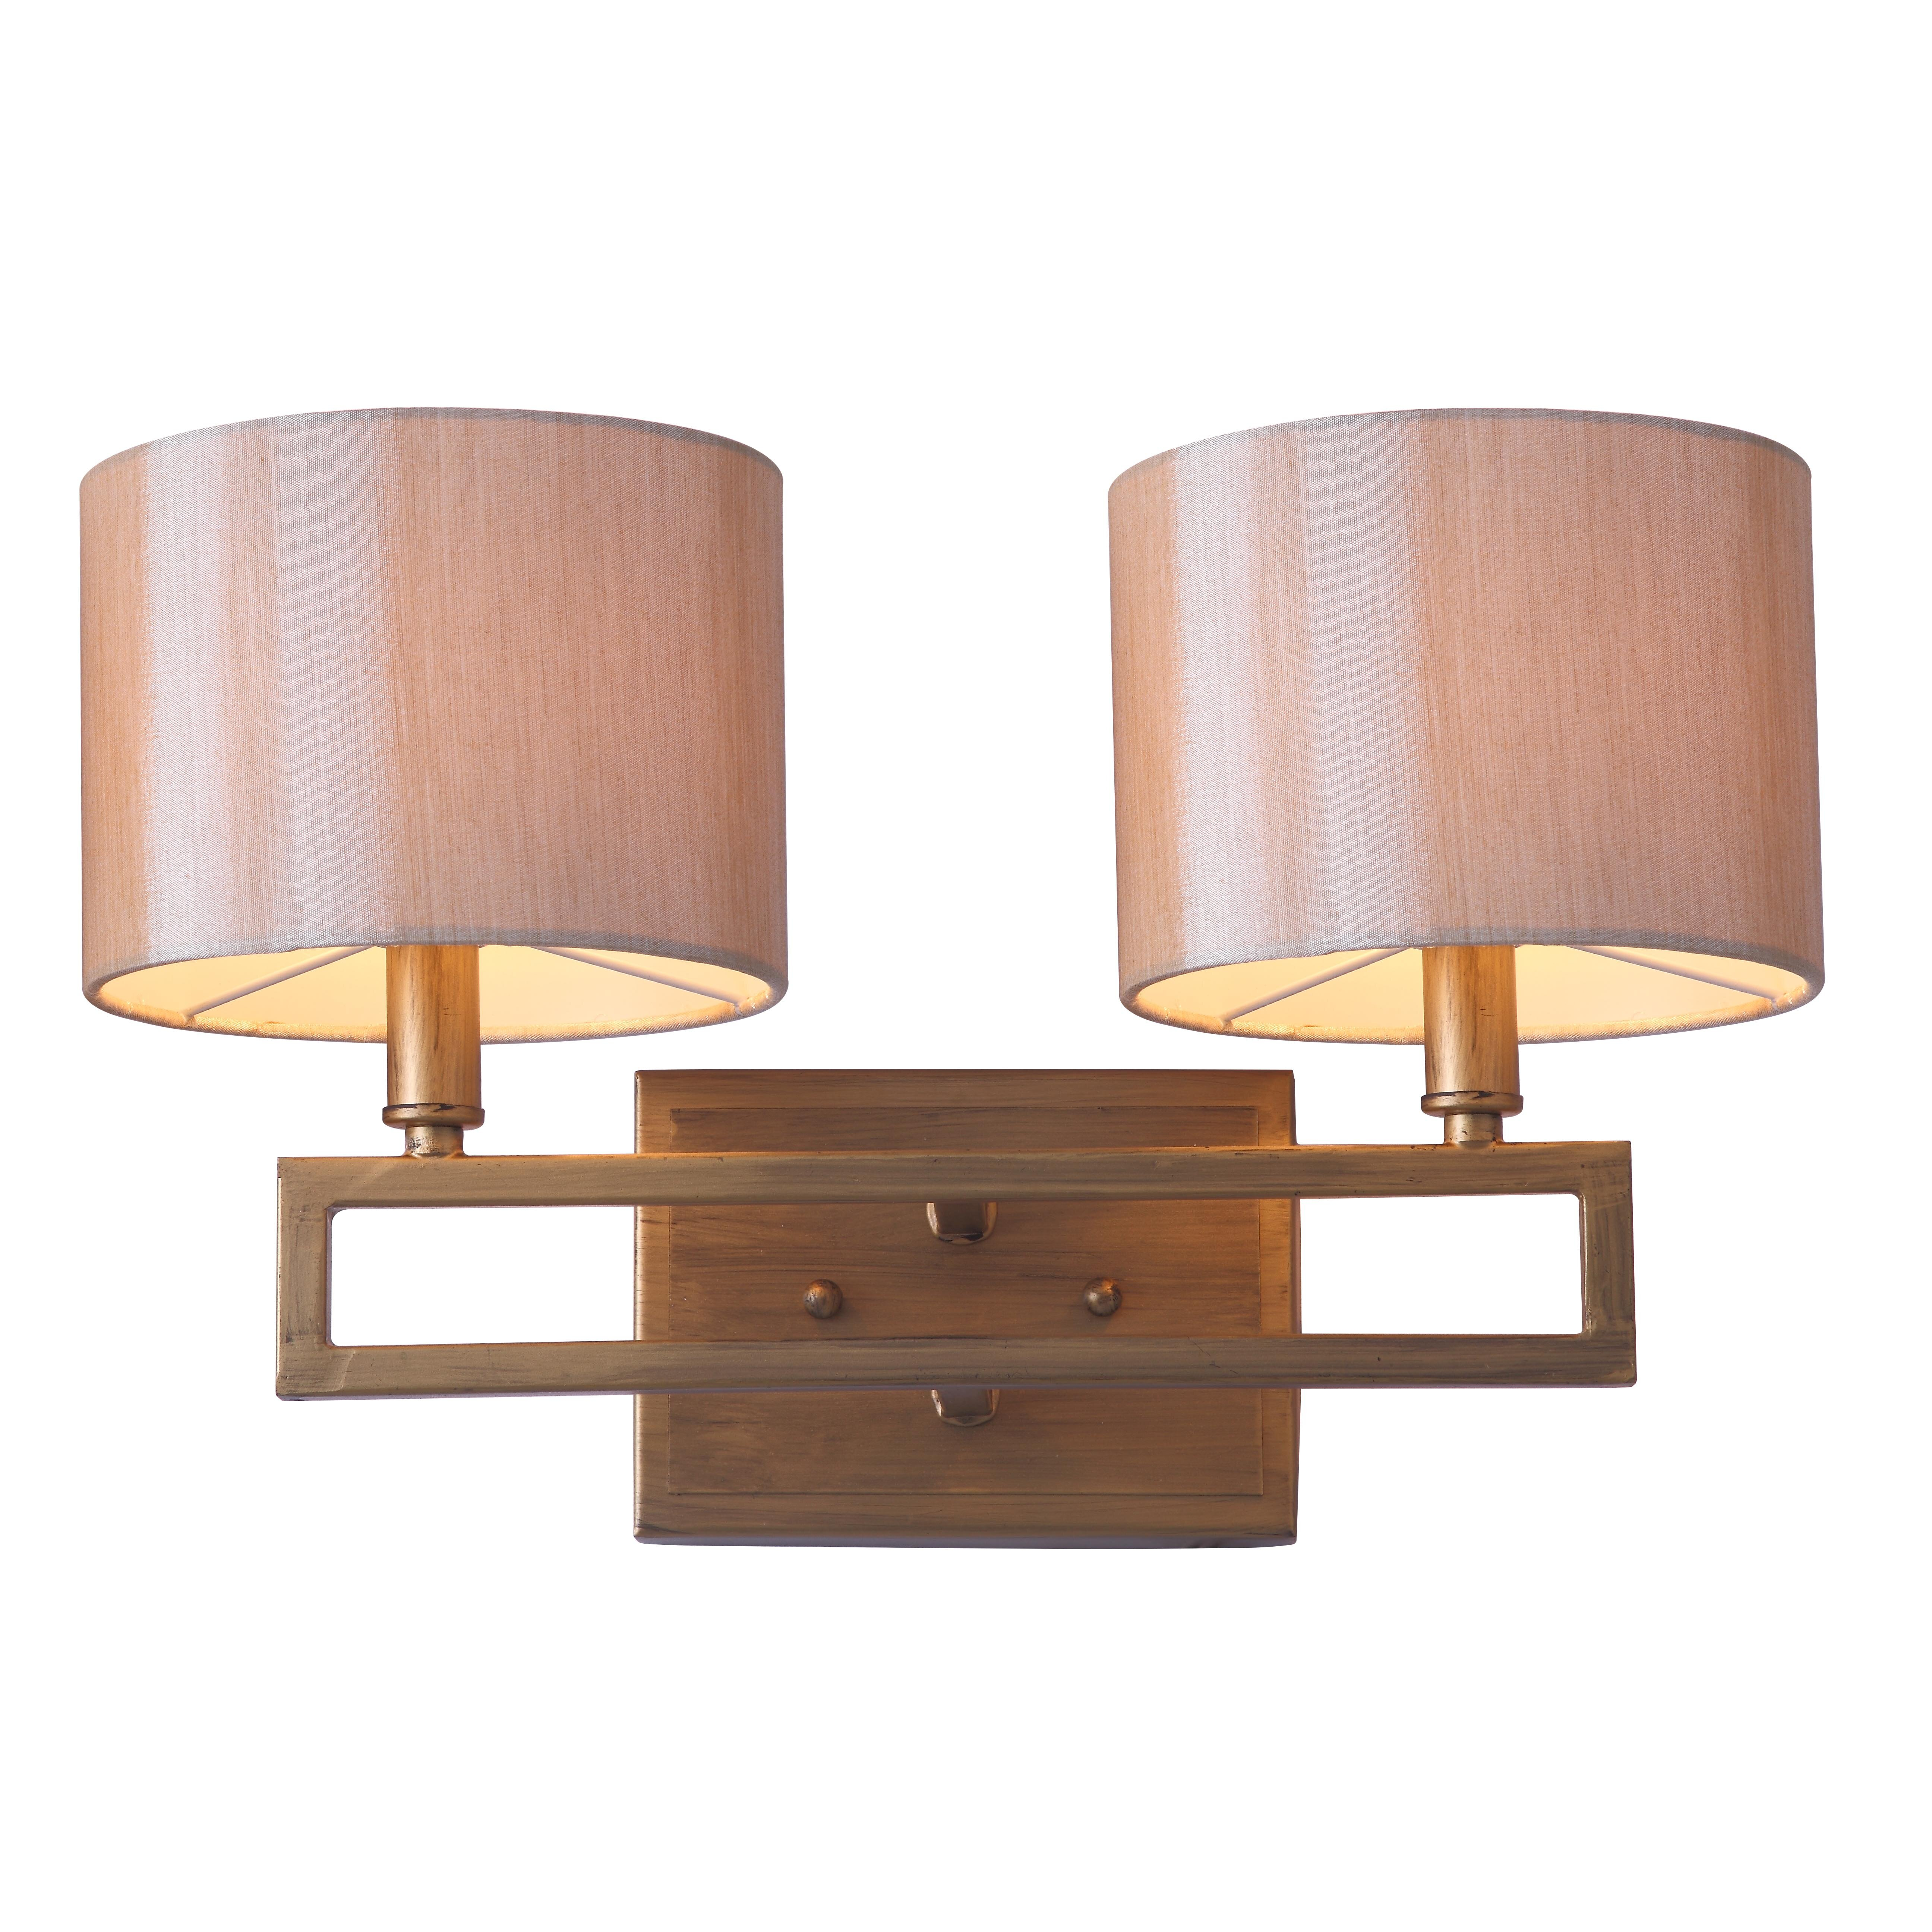 Target Wall Lamps: Safavieh Catena Wall Sconce & Reviews